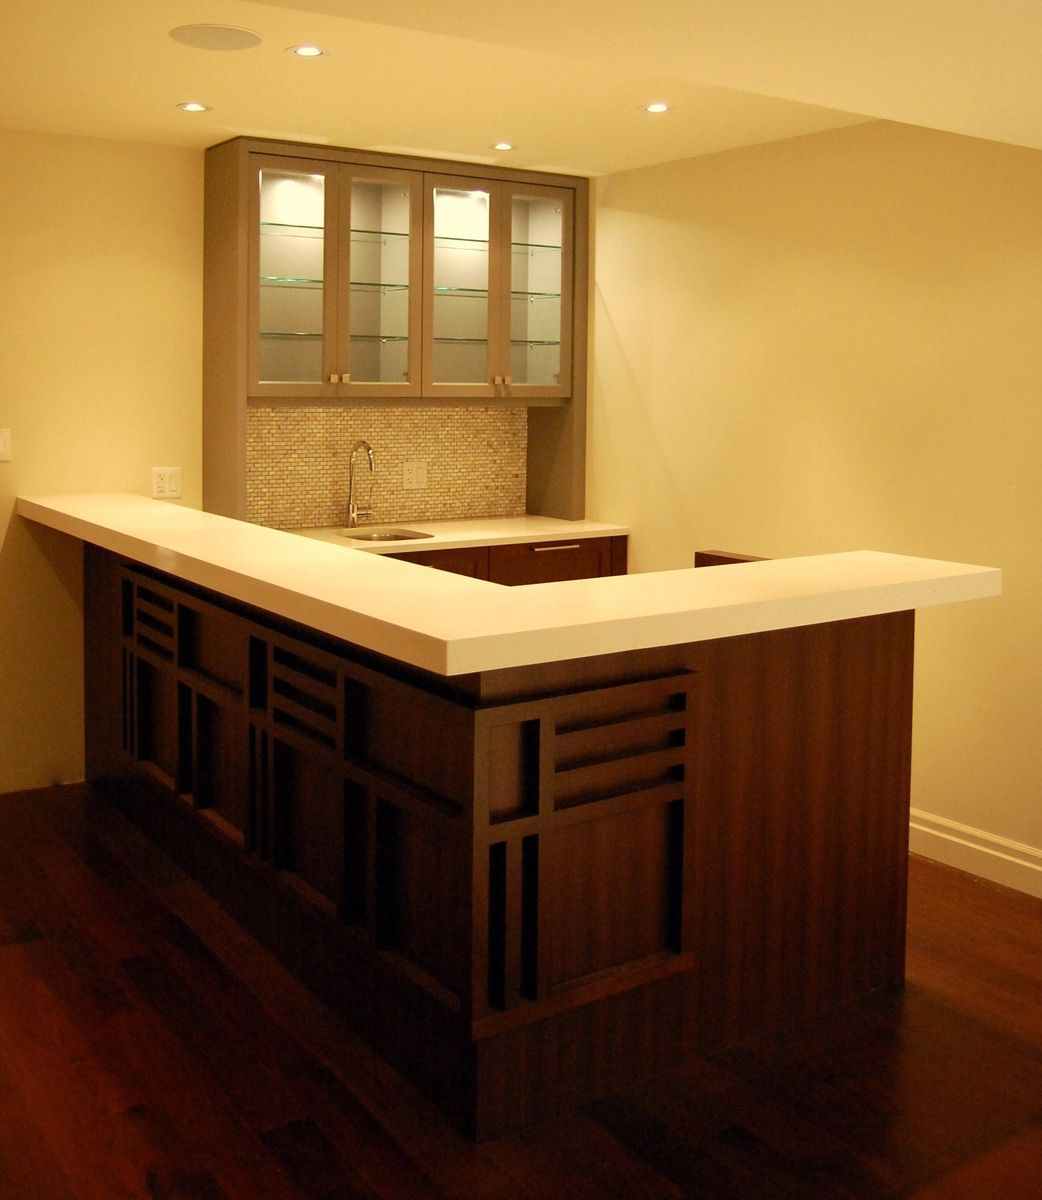 26 Incredible Under The Stairs Utilization Ideas: A Gallery Of Basement Bar Ideas For